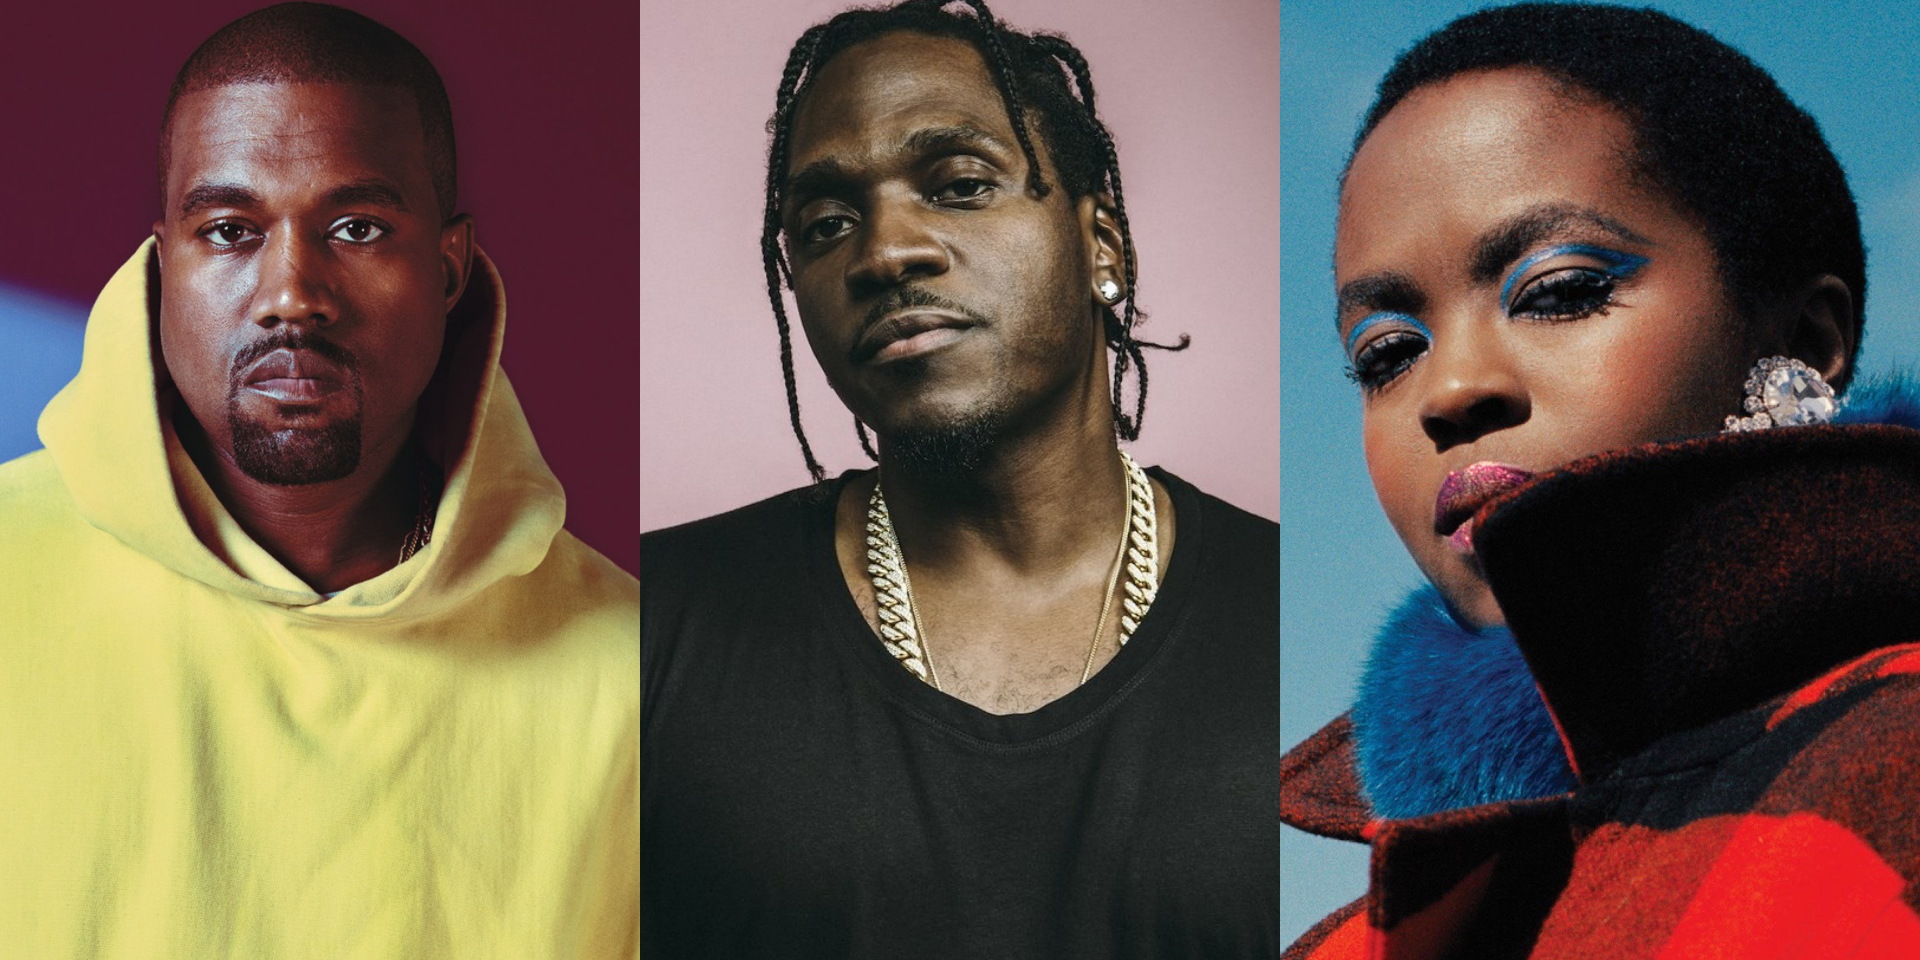 Pusha-T shares new Kanye West-produced song, 'Coming Home', featuring Lauryn Hill – listen